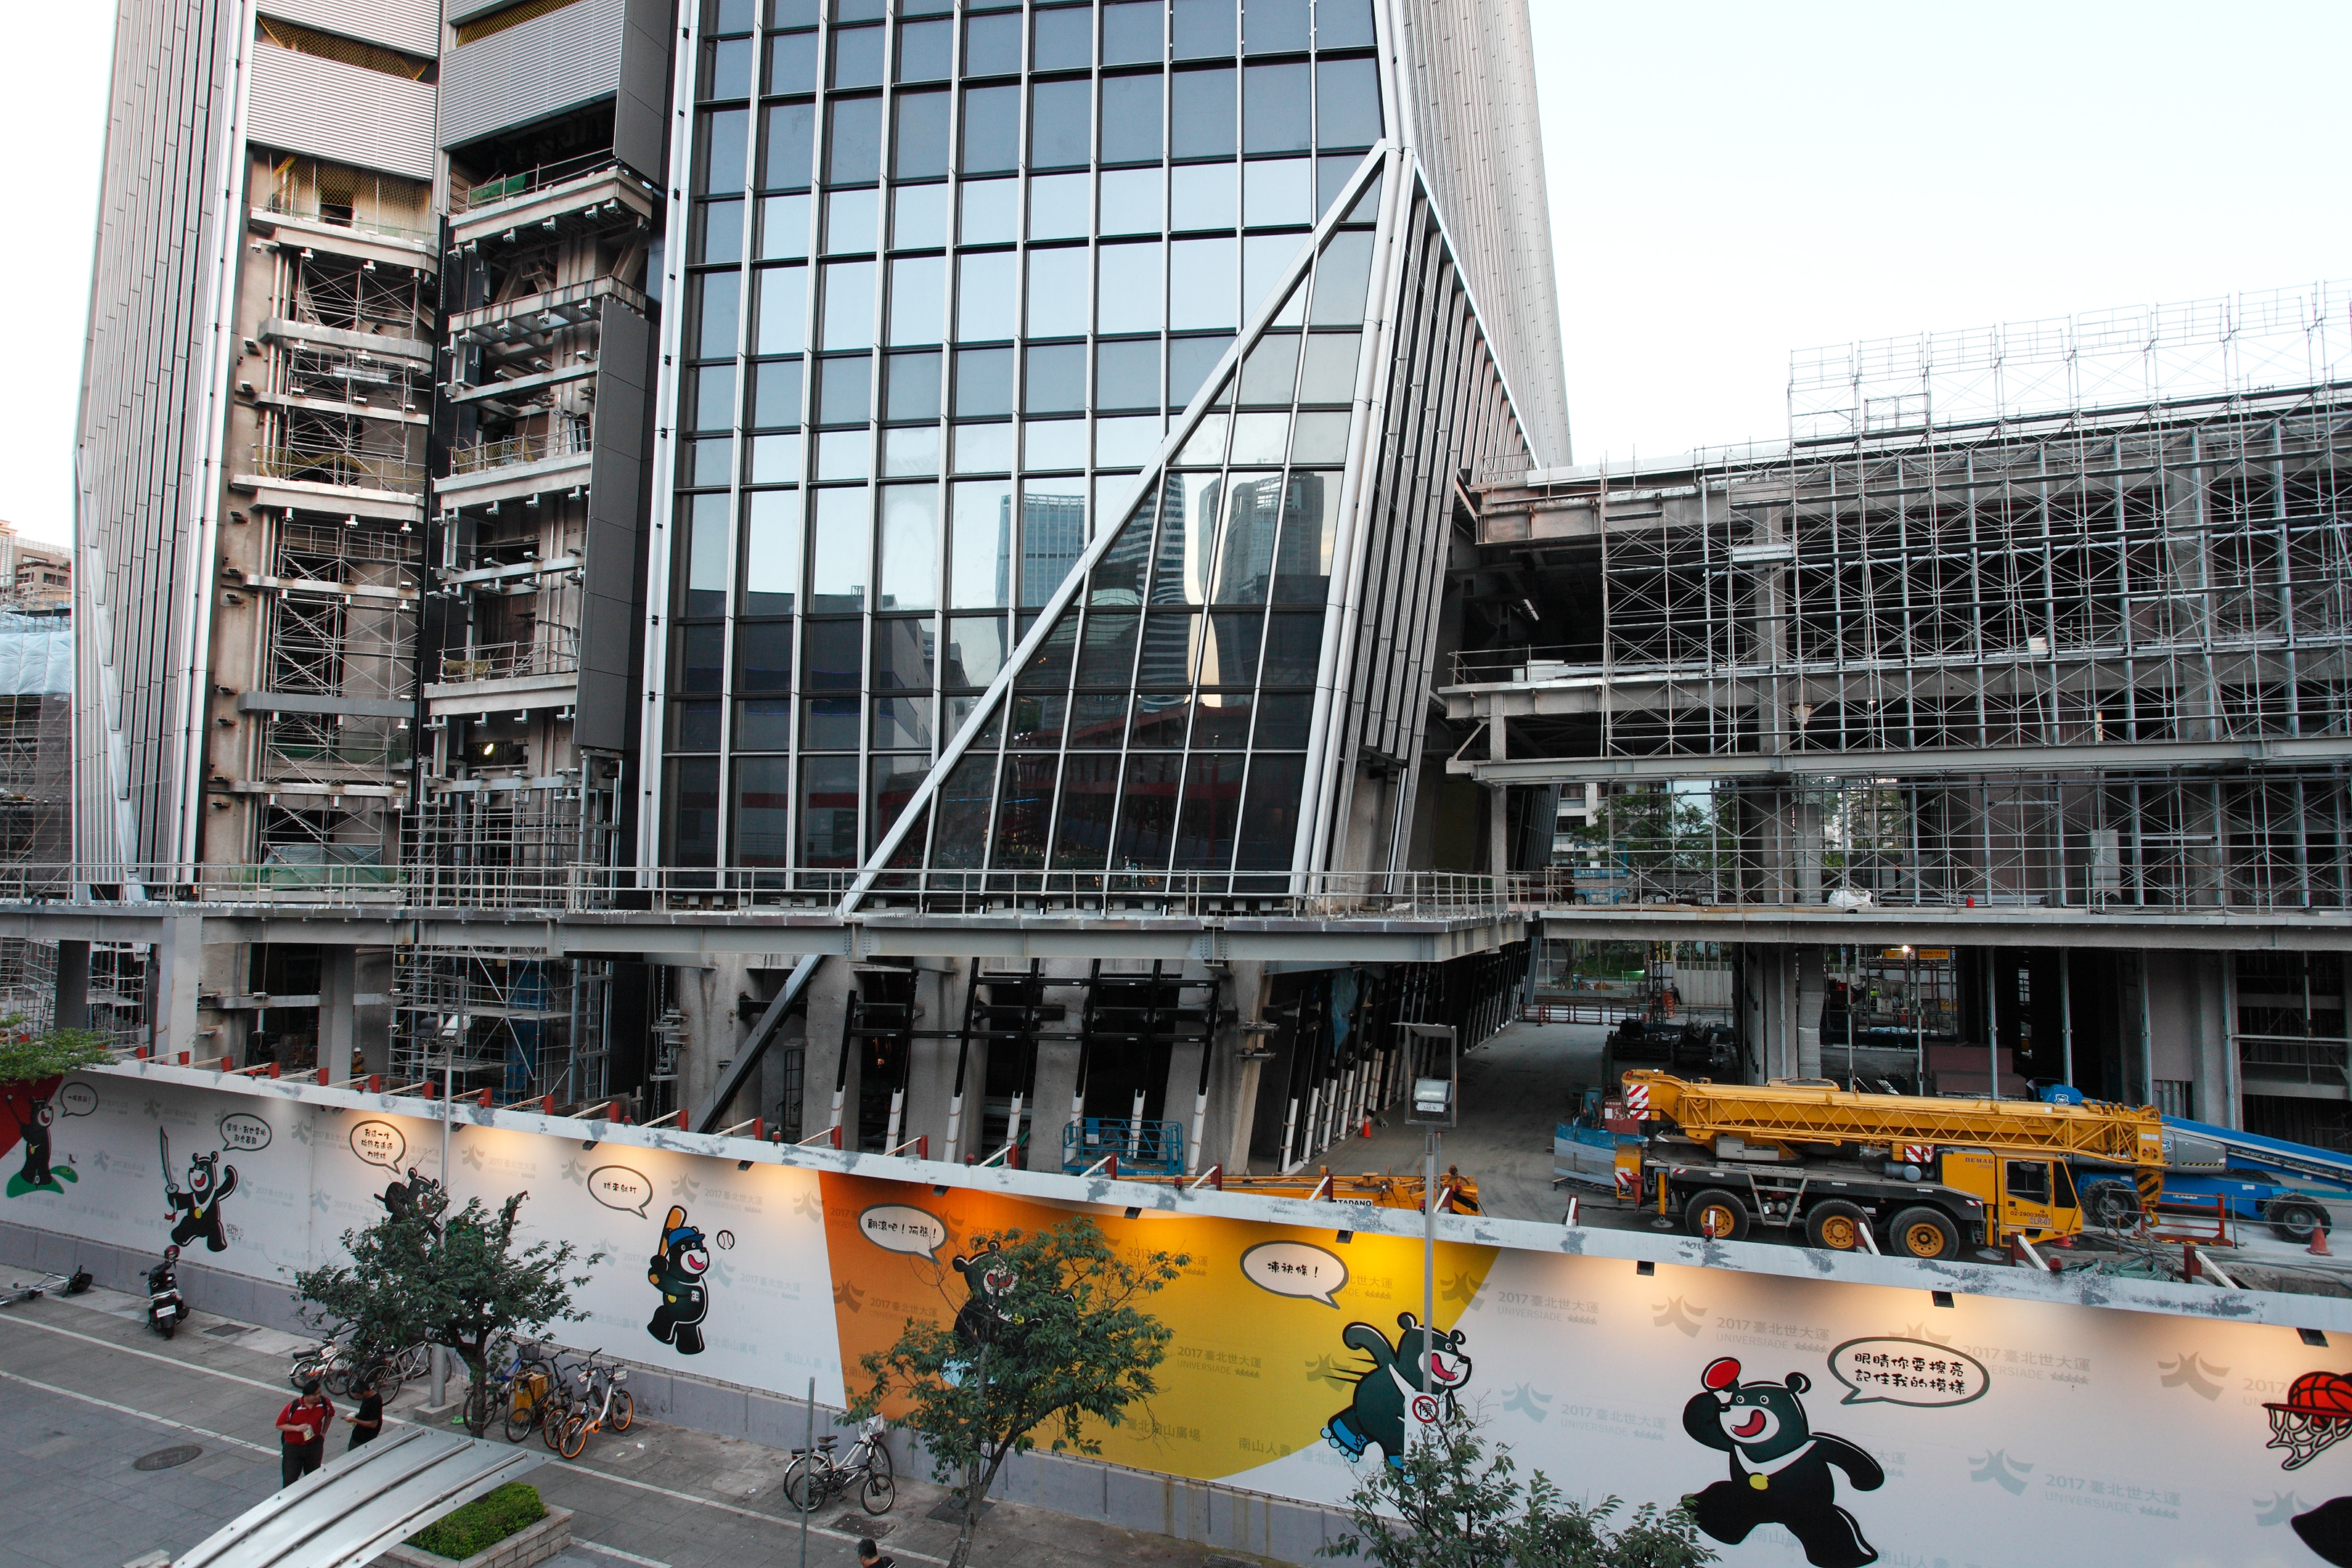 File:Taipei Nan Shan Plaza construction site 20170715a.jpg ...